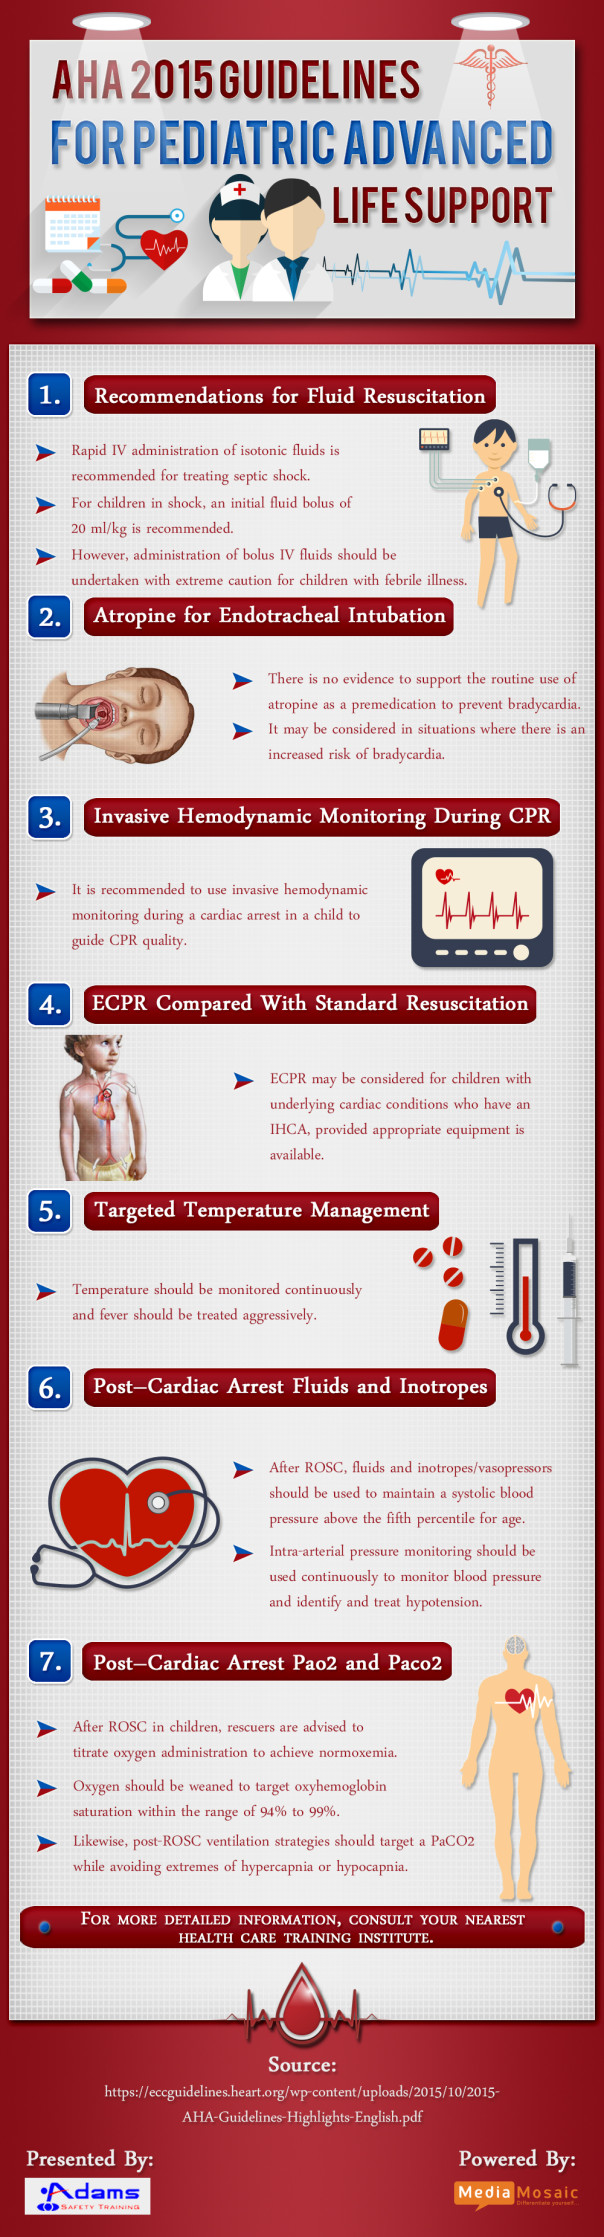 Aha updated guidelines for pediatric life support infographic post navigation 1betcityfo Images